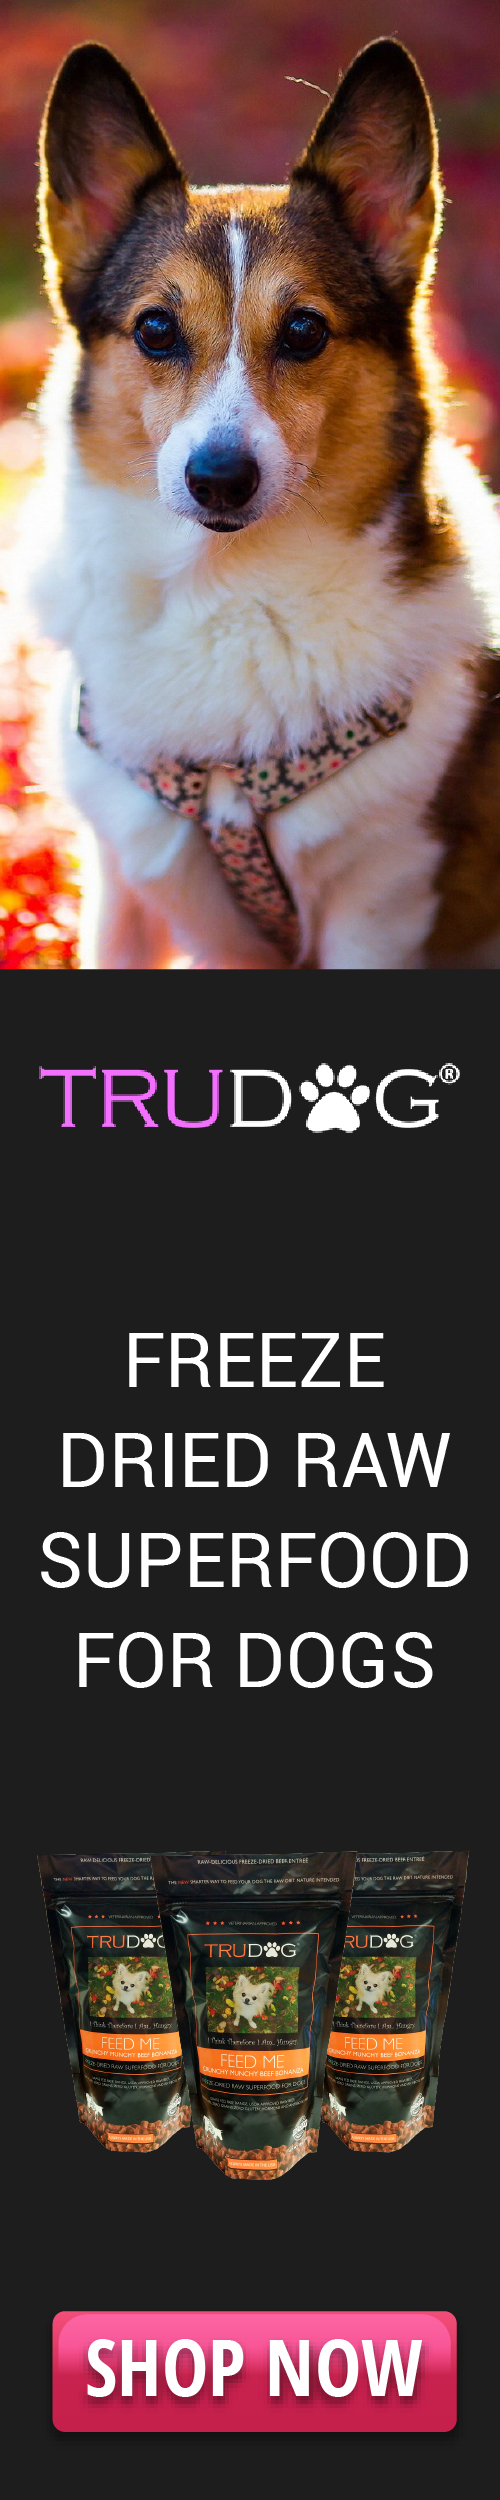 freeze driedraw superfood for dogs